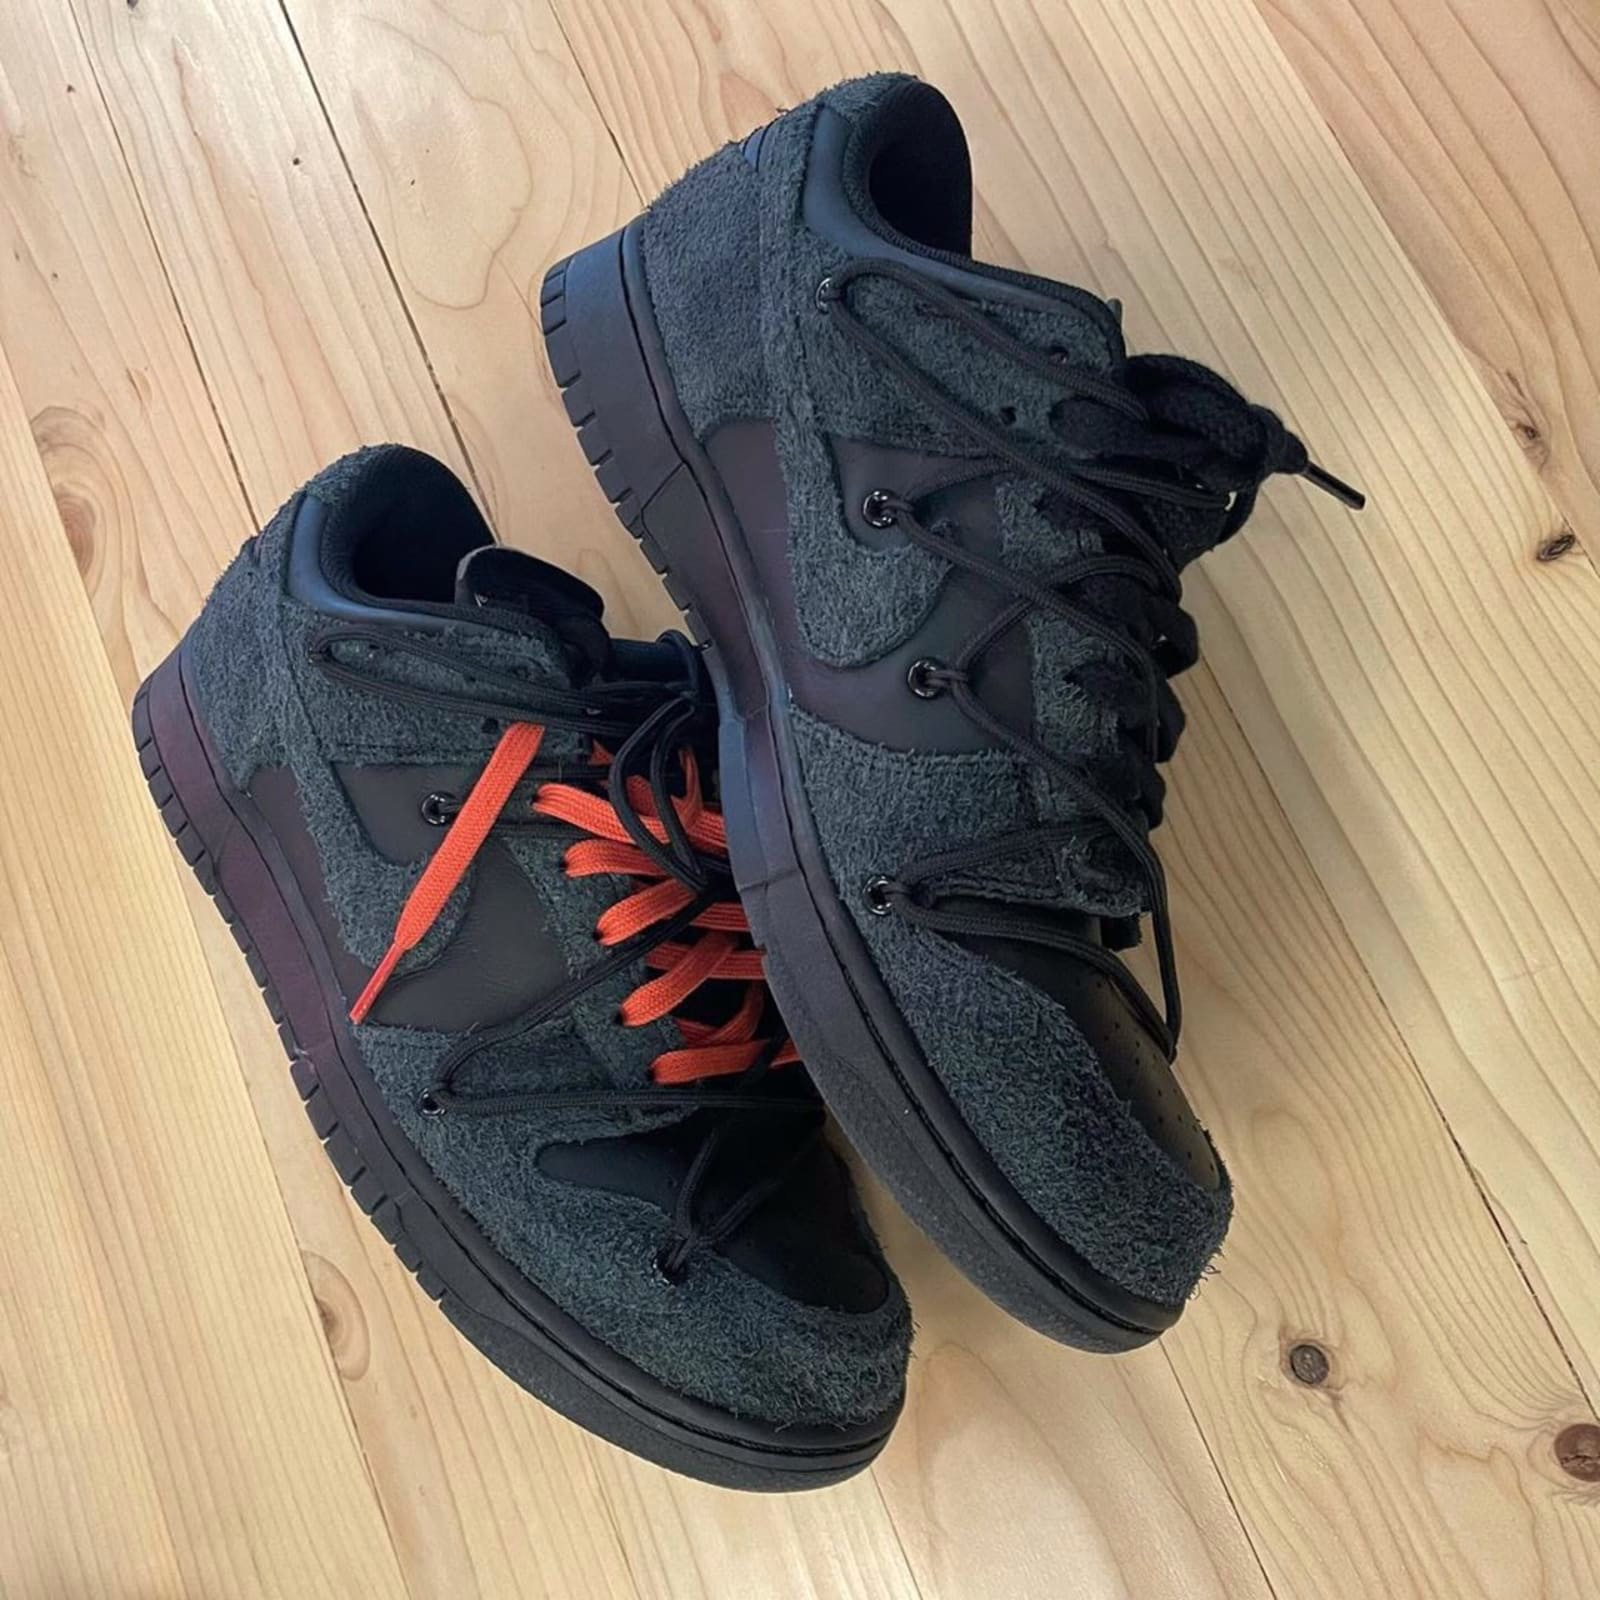 Off-White x Nike Dunk Low black